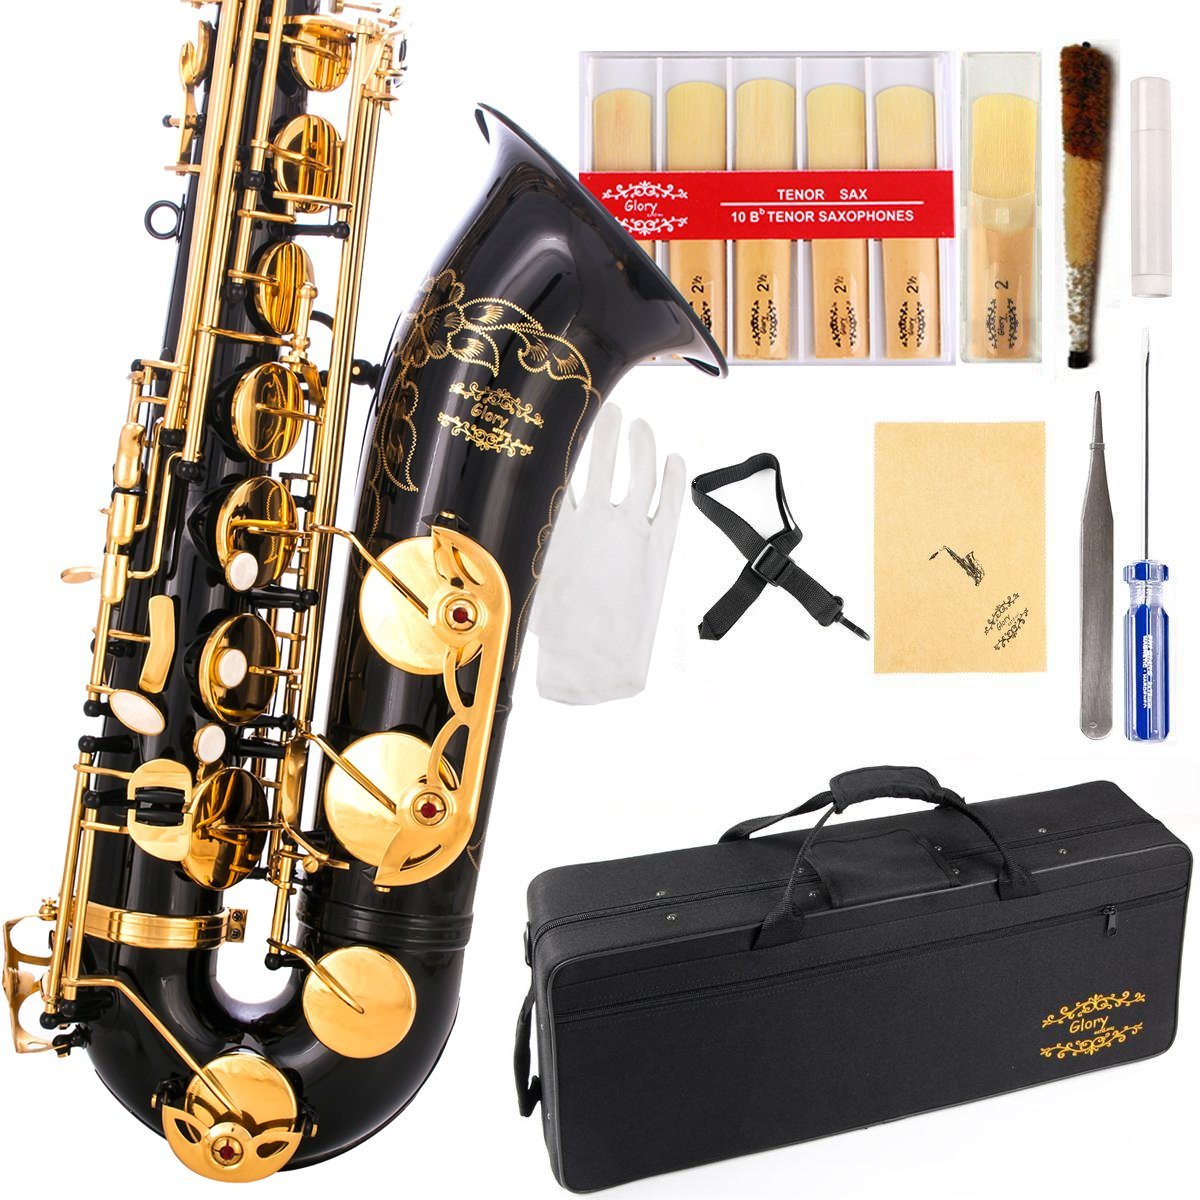 Glory Black/Gold B Flat Tenor Saxophone with Case,10pc Reeds,Mouth Piece,Screw Driver,Nipper. A pair of gloves, Soft Cleaning Cloth. by GLORY